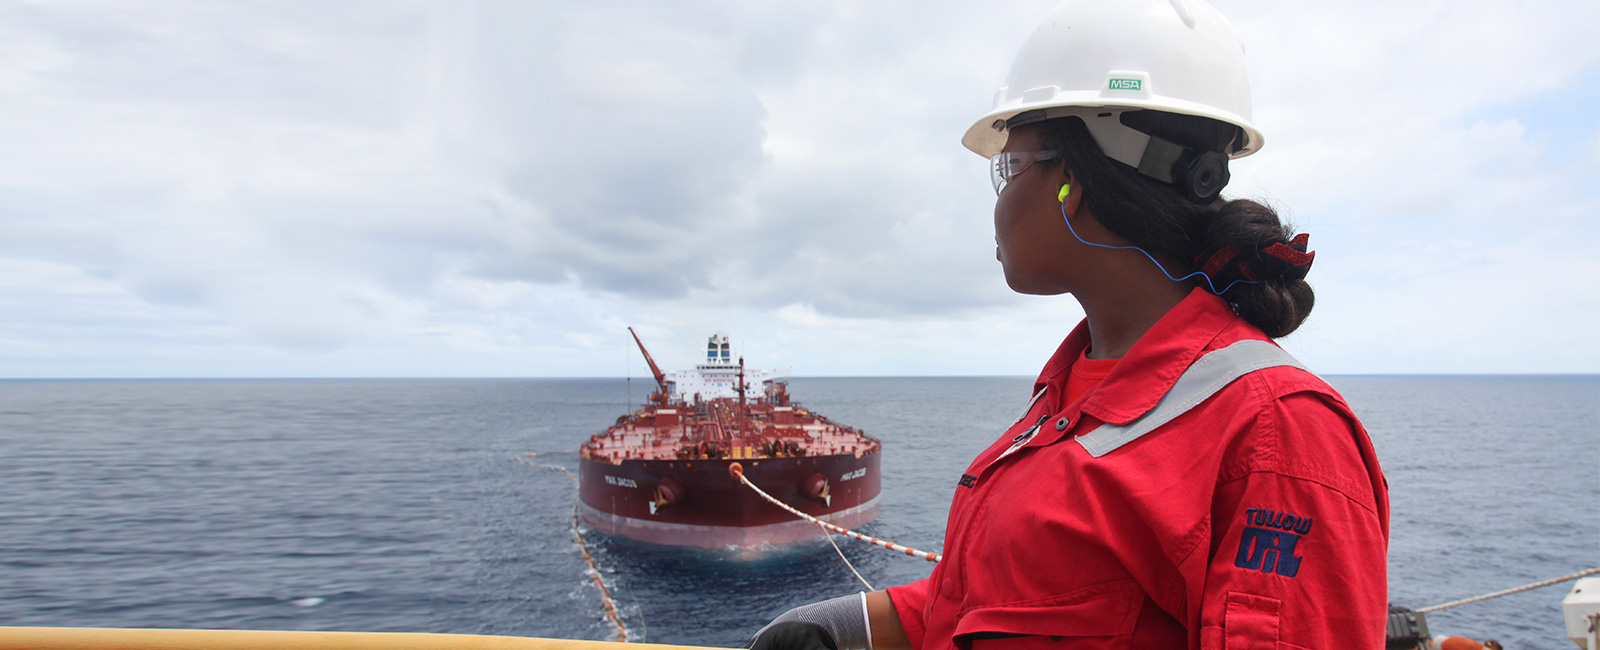 Towards gender equality and inclusivity in oil, gas, and mining